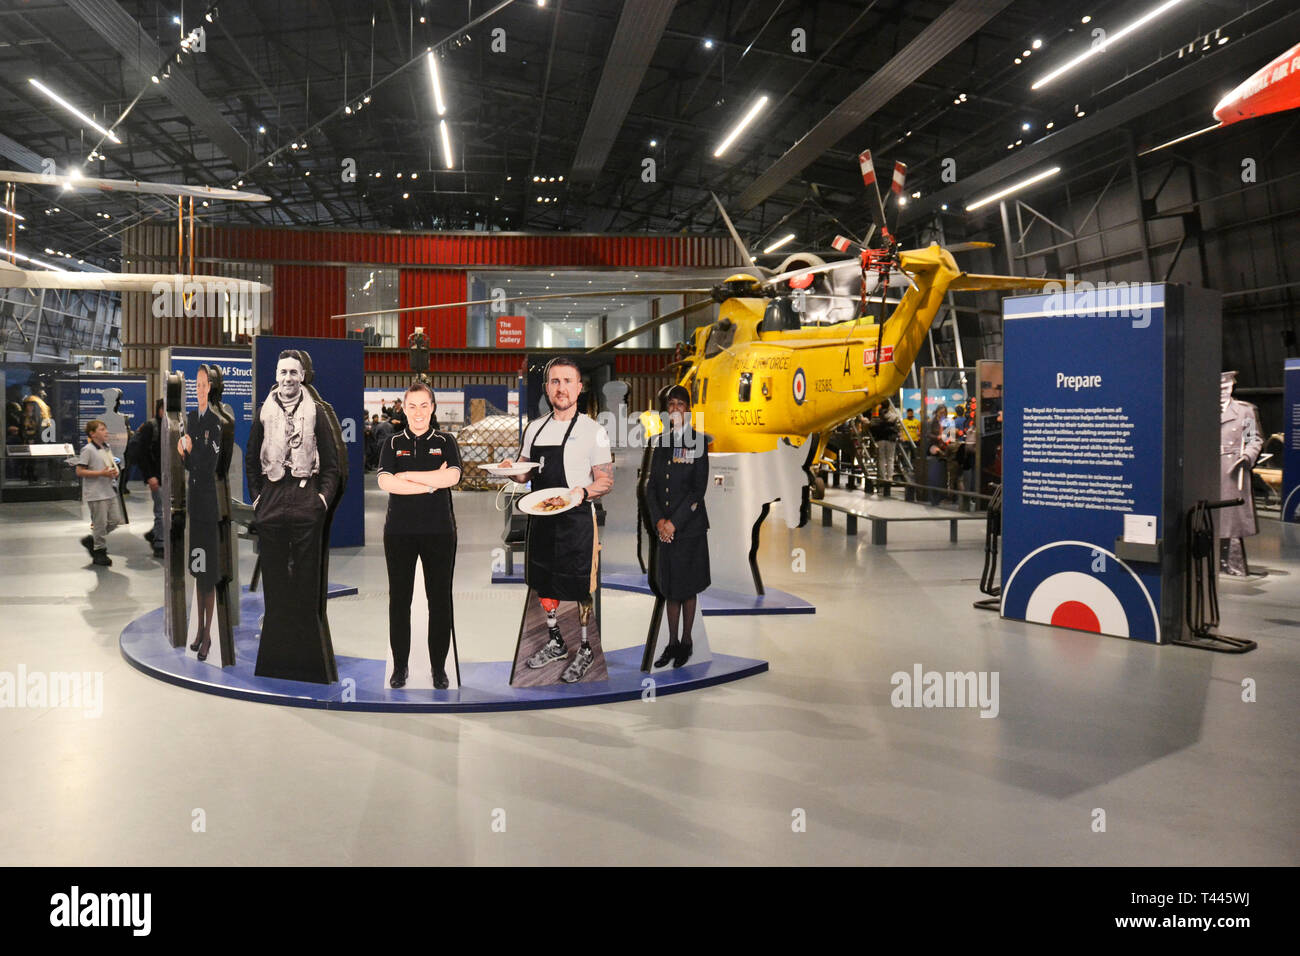 Display about RAF roles and people at the RAF Museum, London, UK Stock Photo